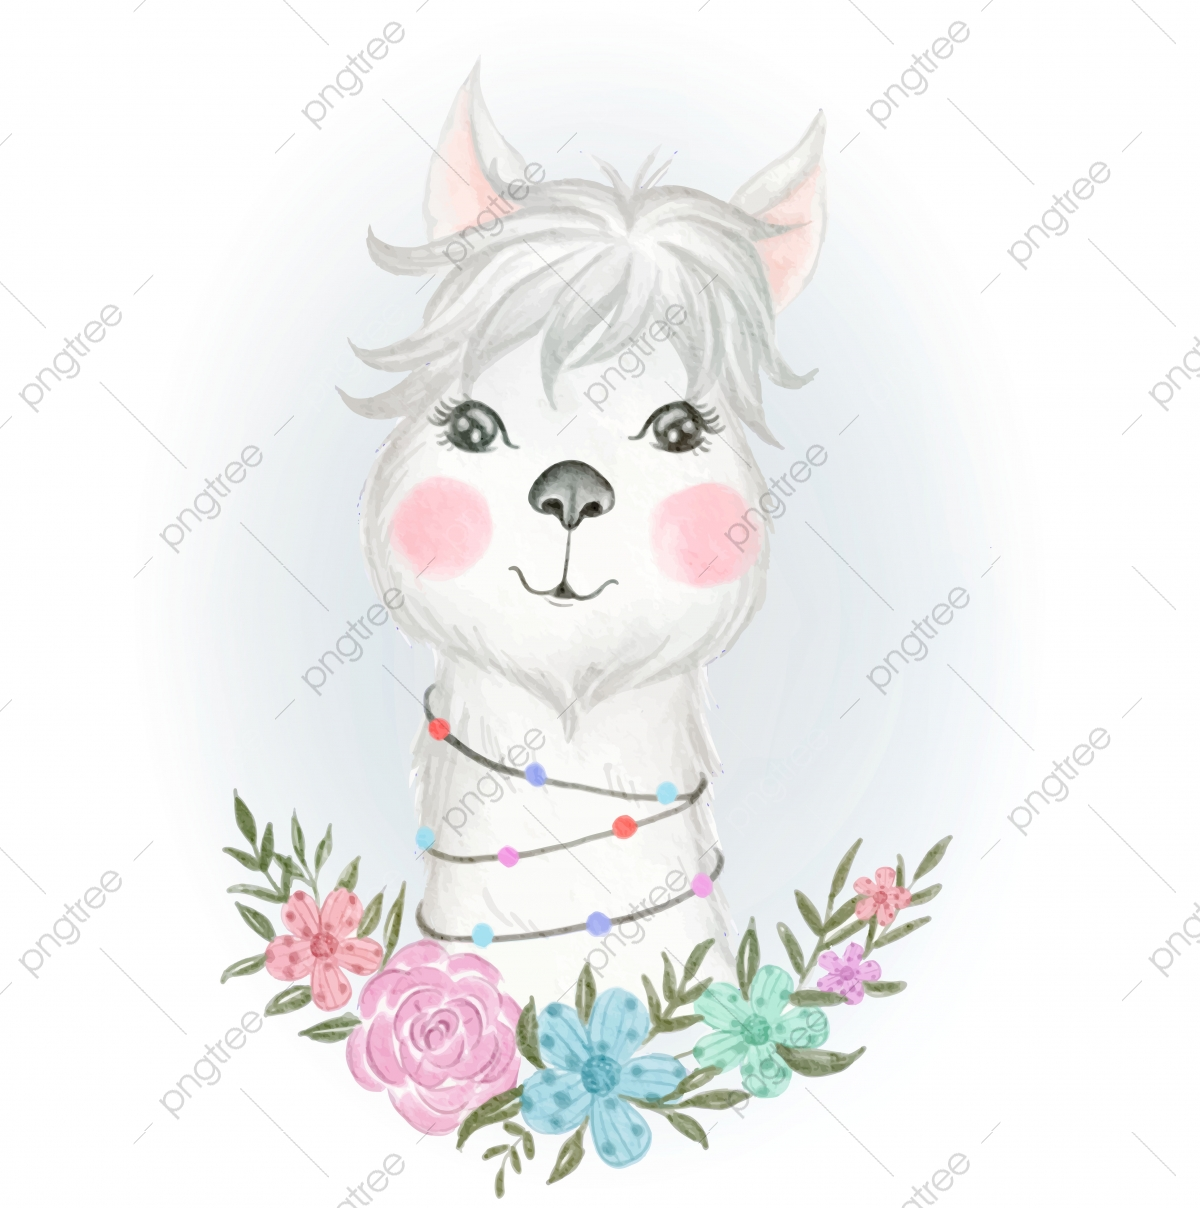 Baby Llama Adorable With Floral Watercolor Illustration Llama Clipart Girl Watercolor Png And Vector With Transparent Background For Free Download